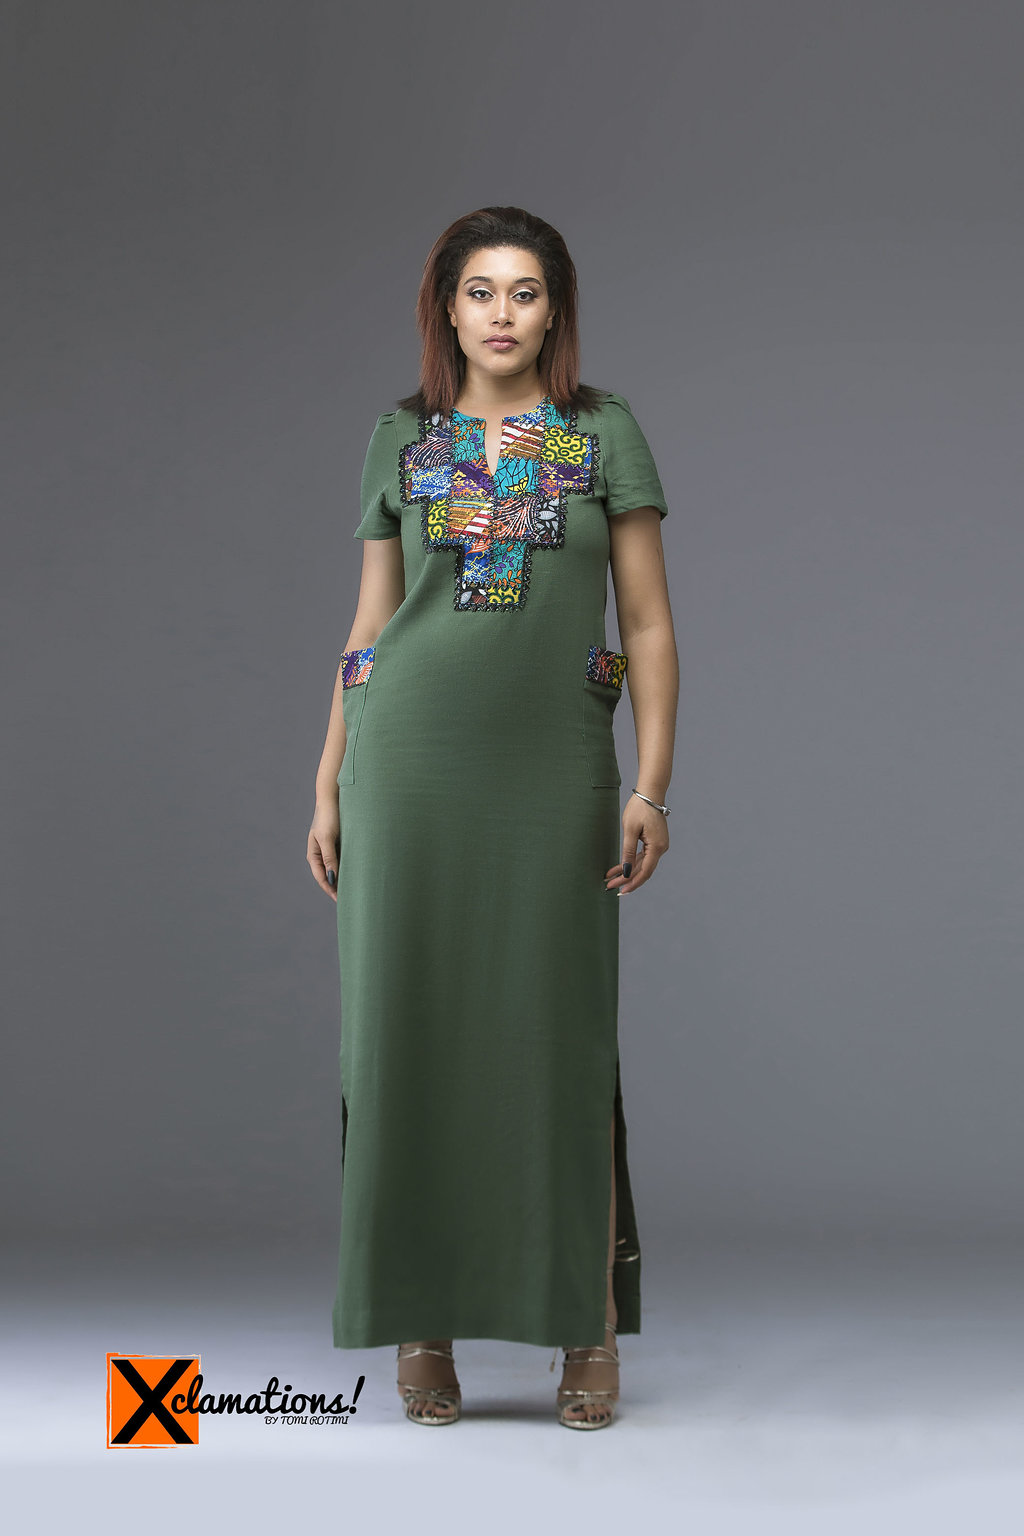 Nigerian Ready to Wear Brand Features Adunni Ade for its Summer Signatures Collection